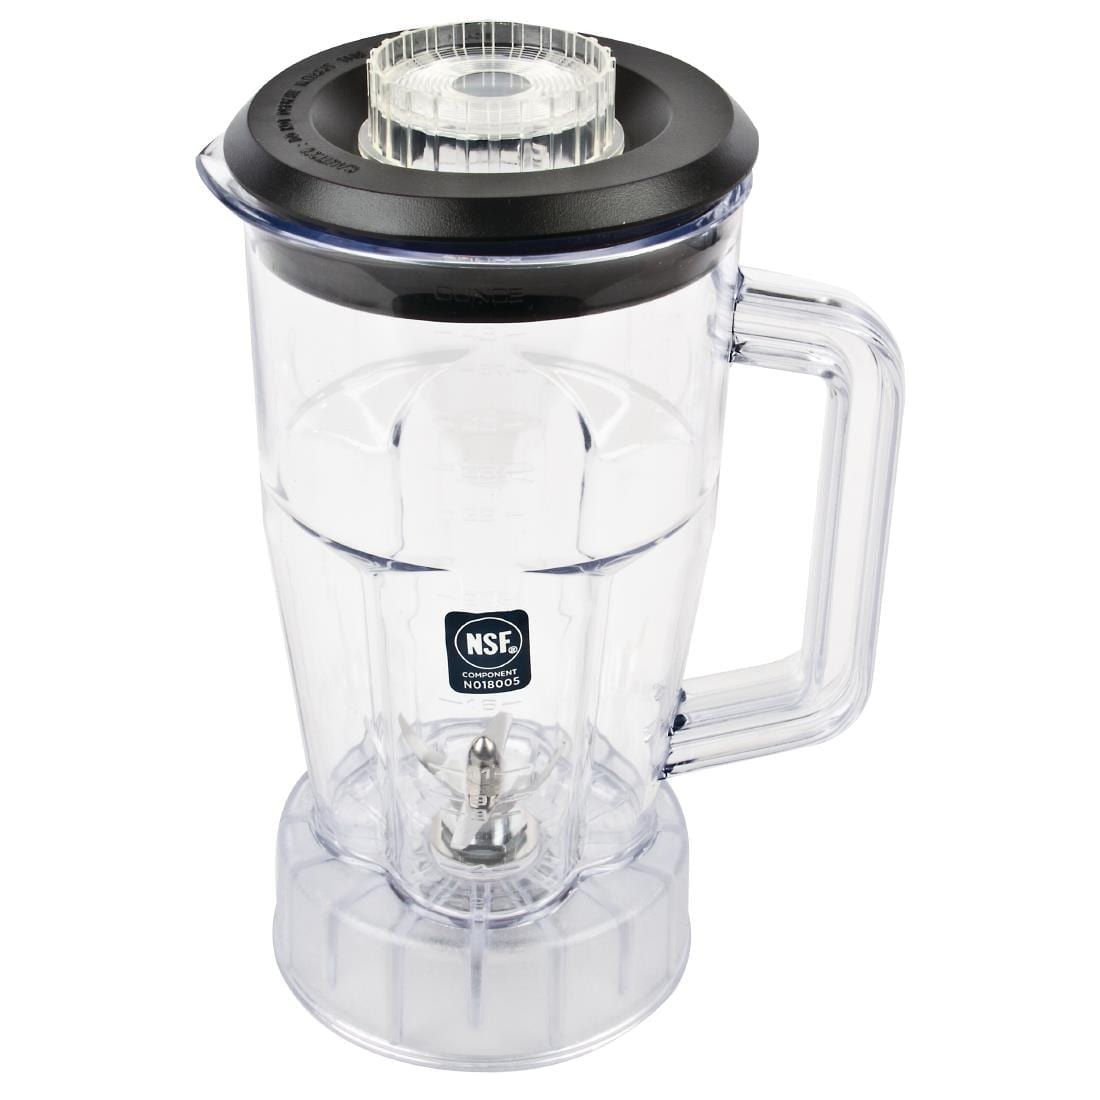 1.4 Litre polycarbonate Jug with Blade and Lid